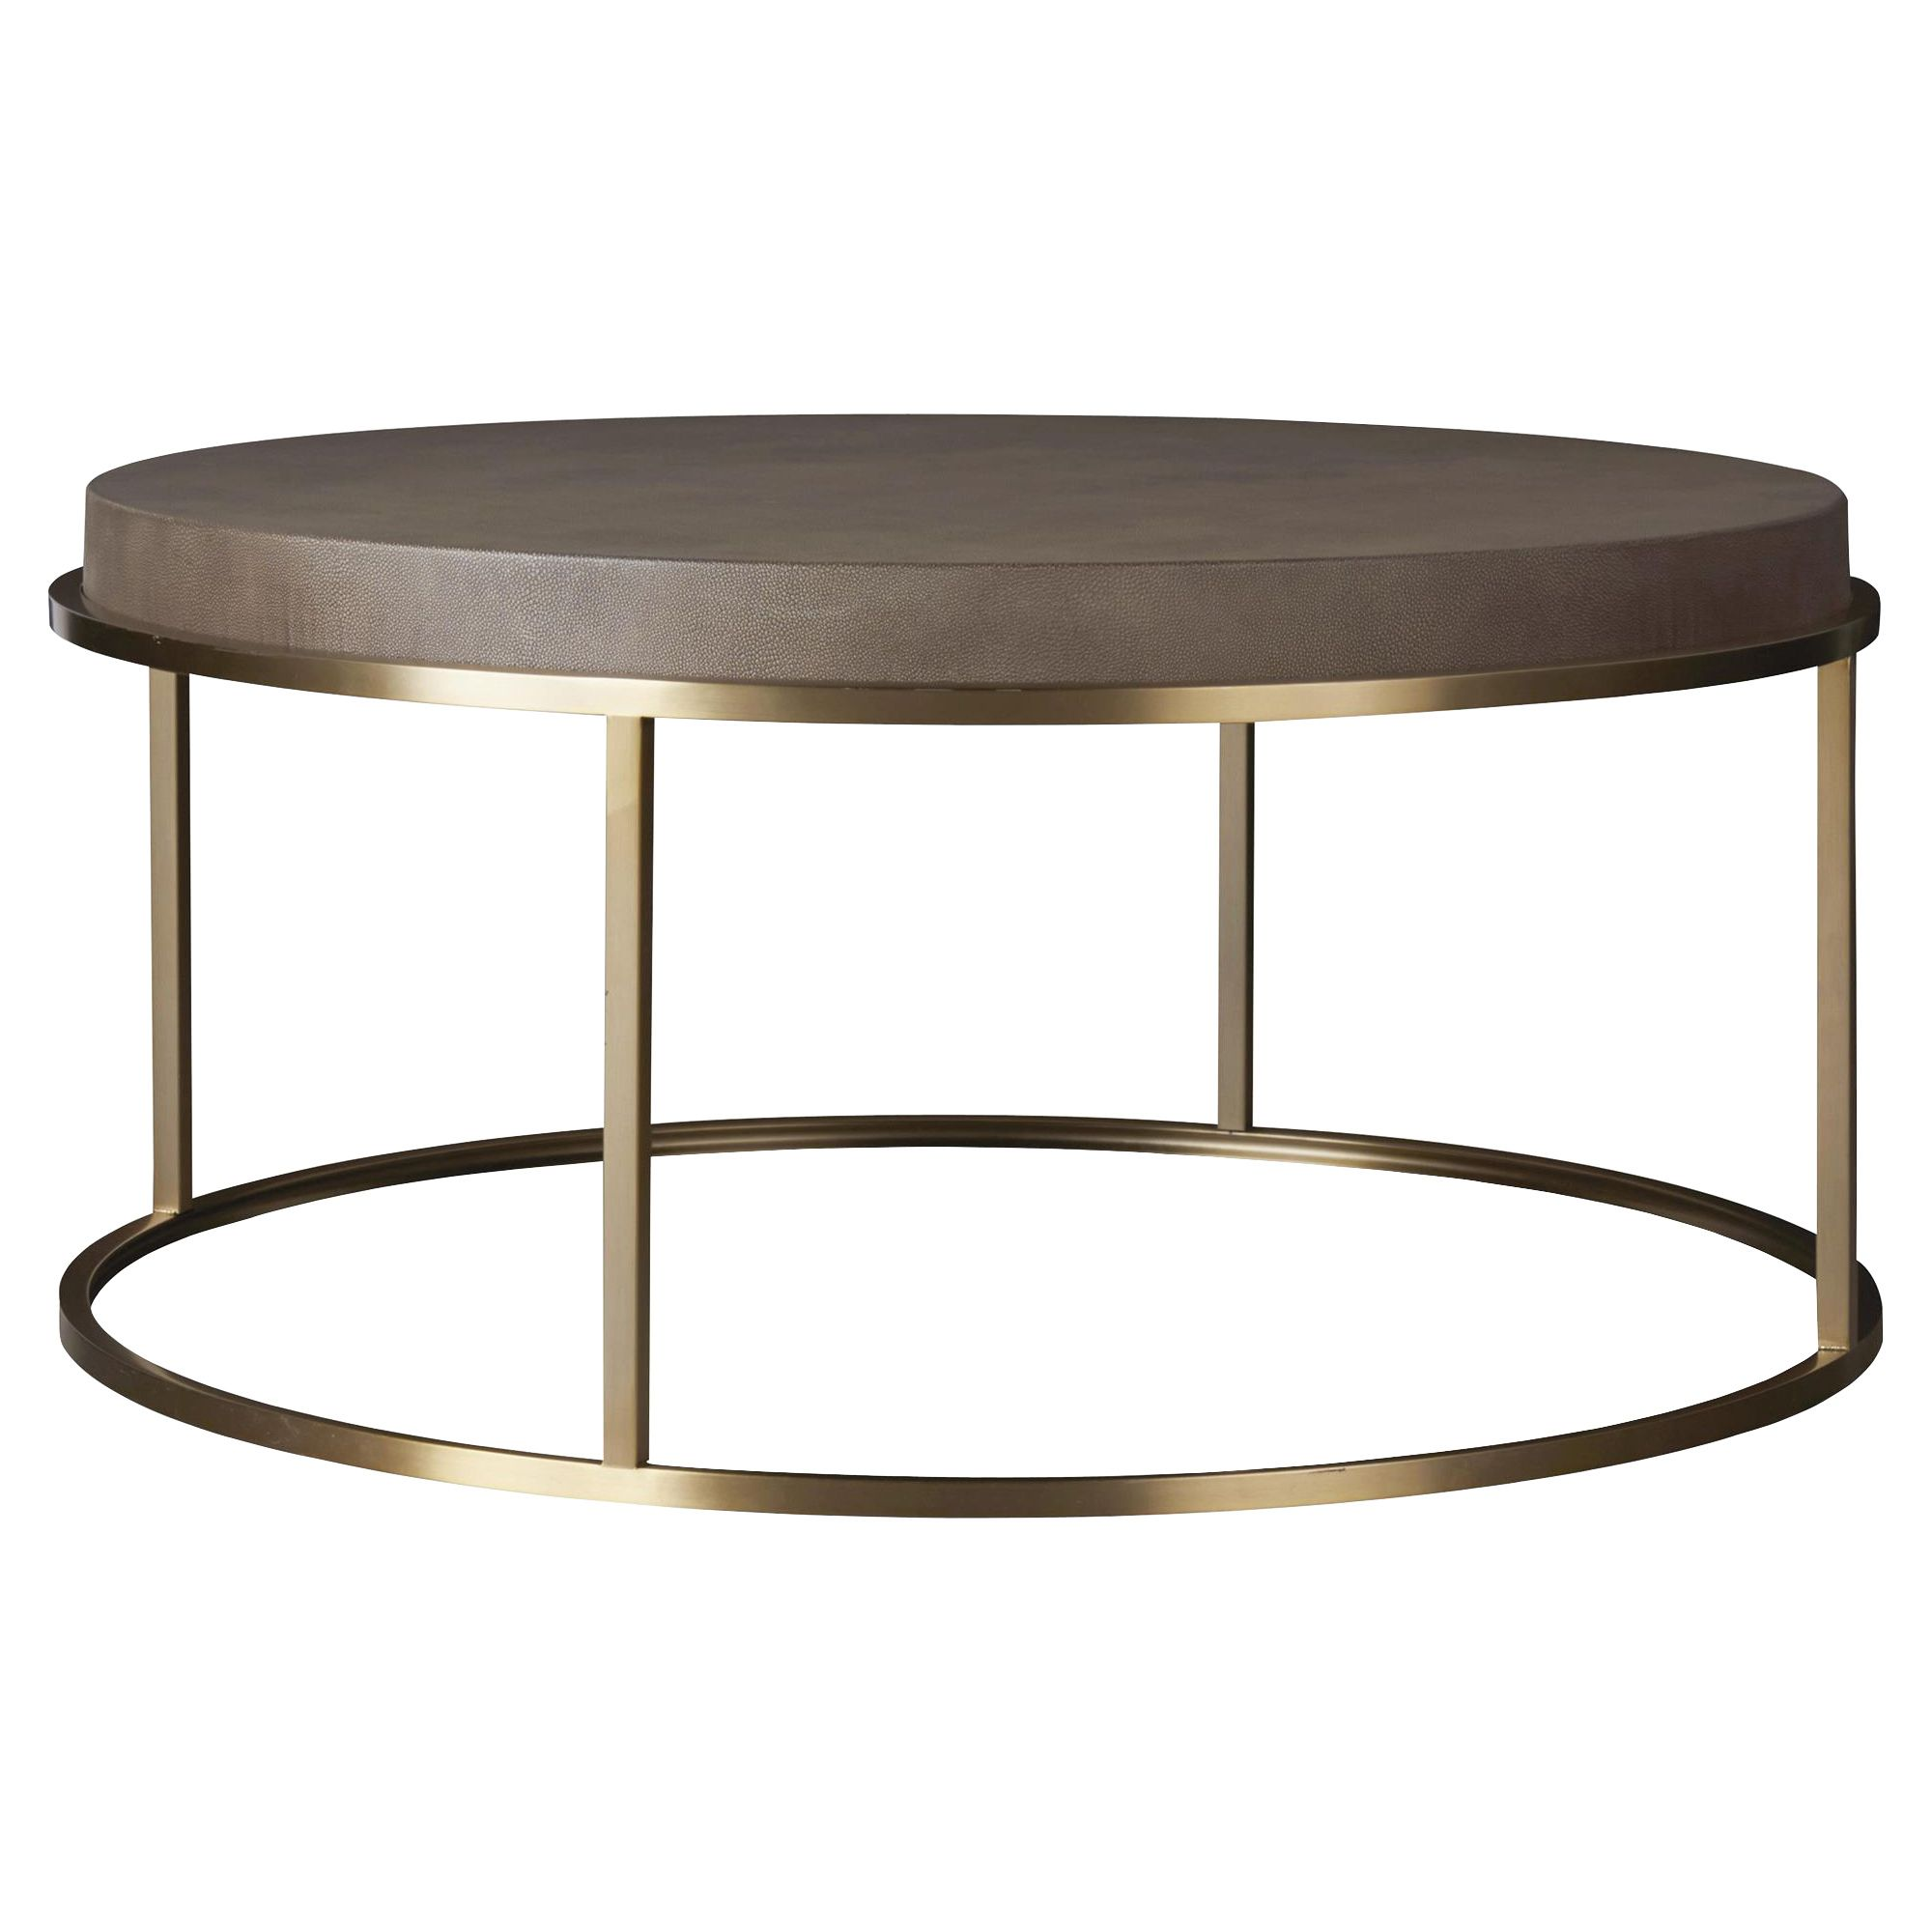 Katherine Modern Classic Brown Faux Shagreen Top Metal Round Round Coffee Table Brass Round Coffee Table Round Coffee Table Coffee Table [ 2000 x 2000 Pixel ]